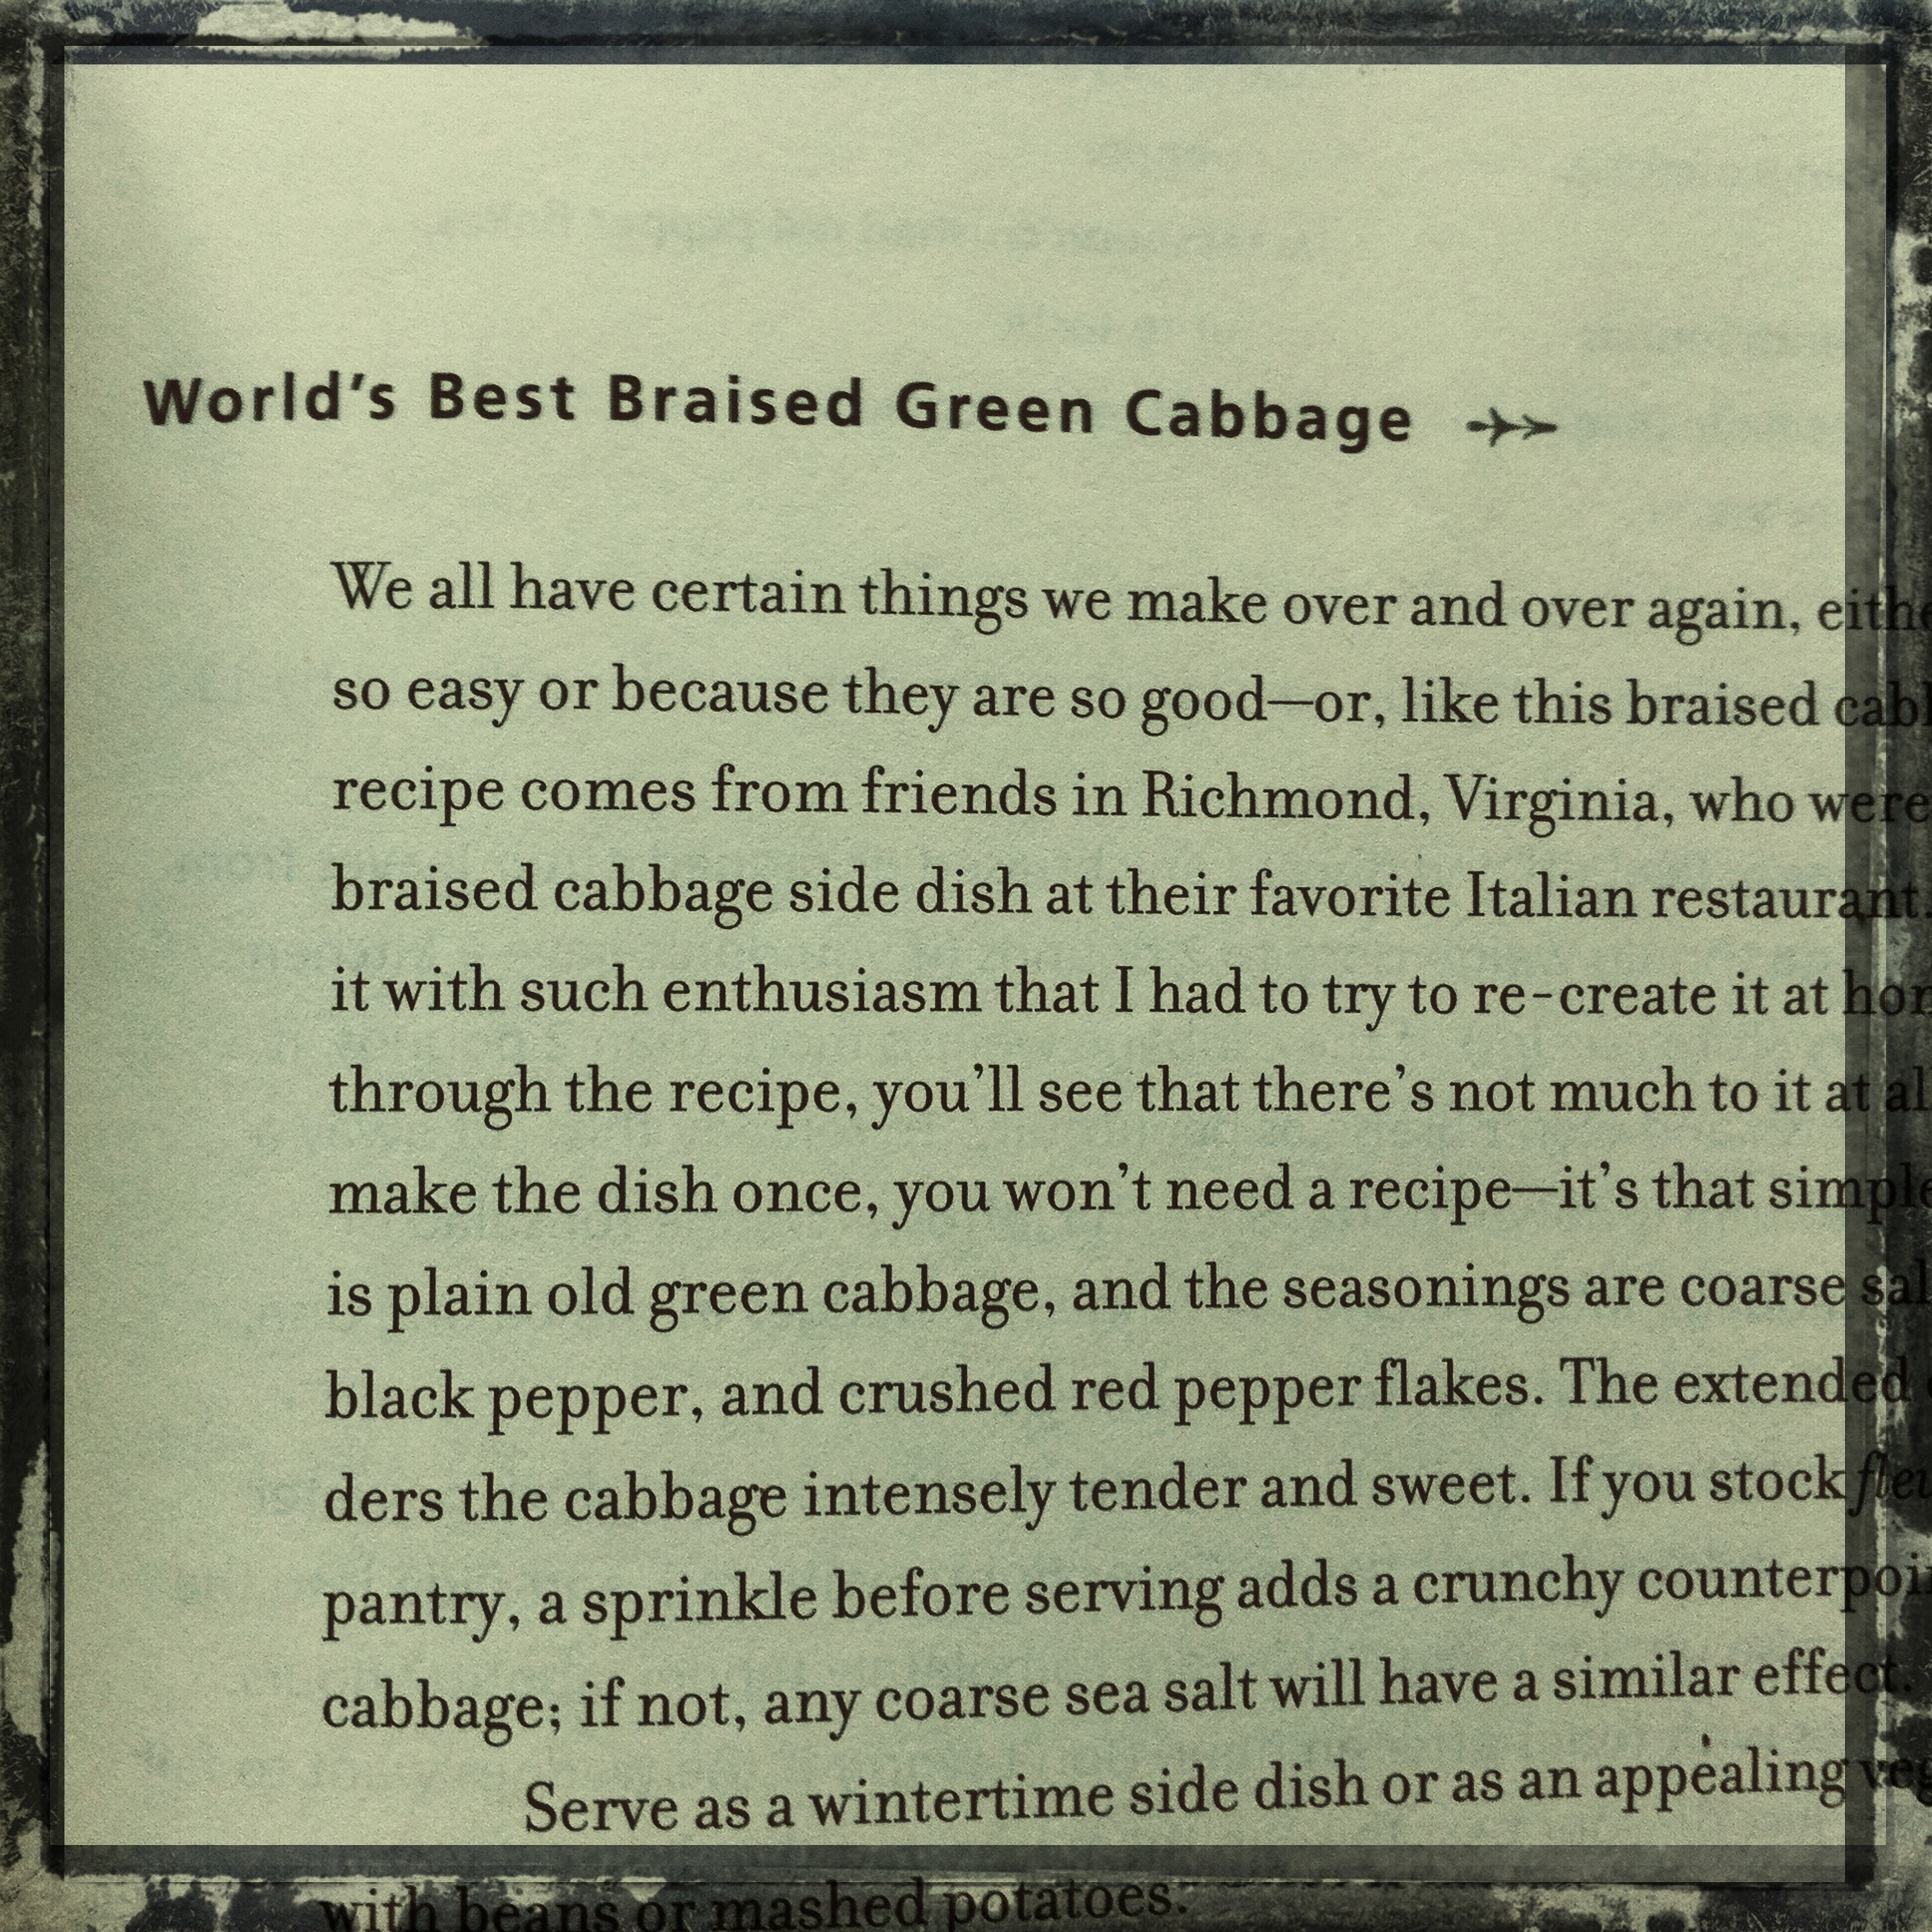 ... recipe for green cabbage, World's Best Braised Green Cabbage